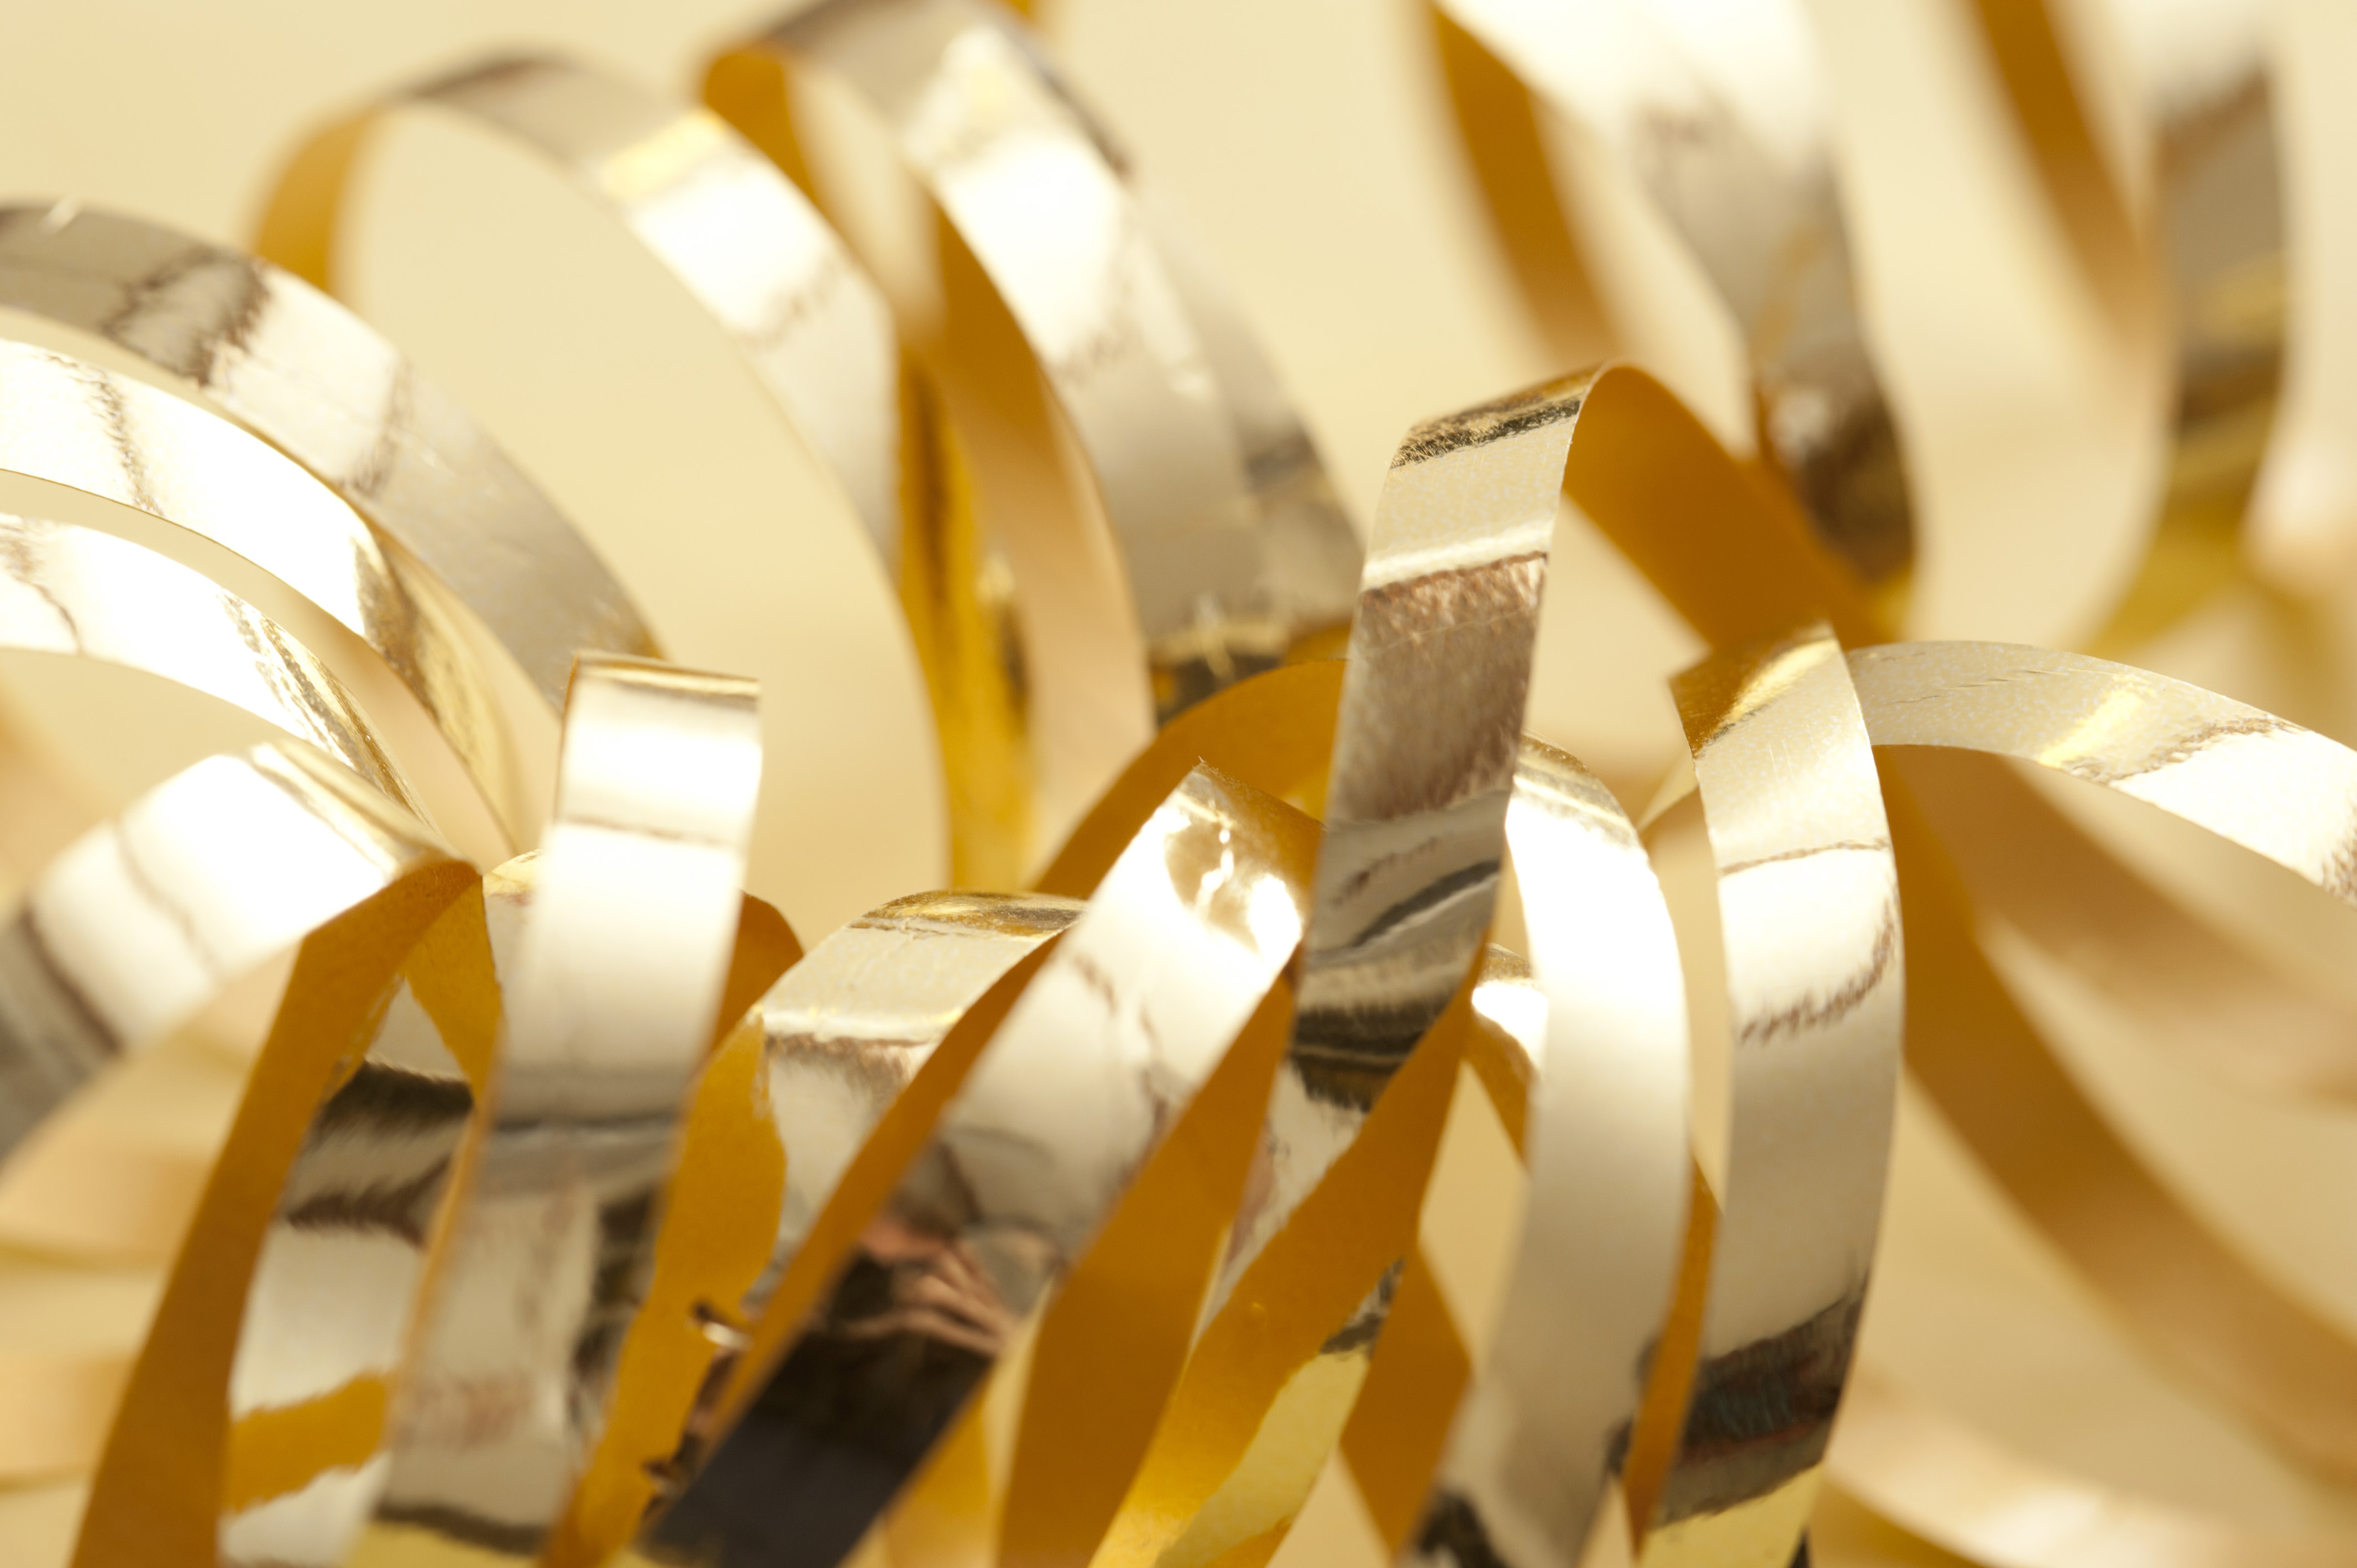 Close up of coiled metallic gold ribbons for a festive celebration on a yellow background, suitable as a Christmas theme